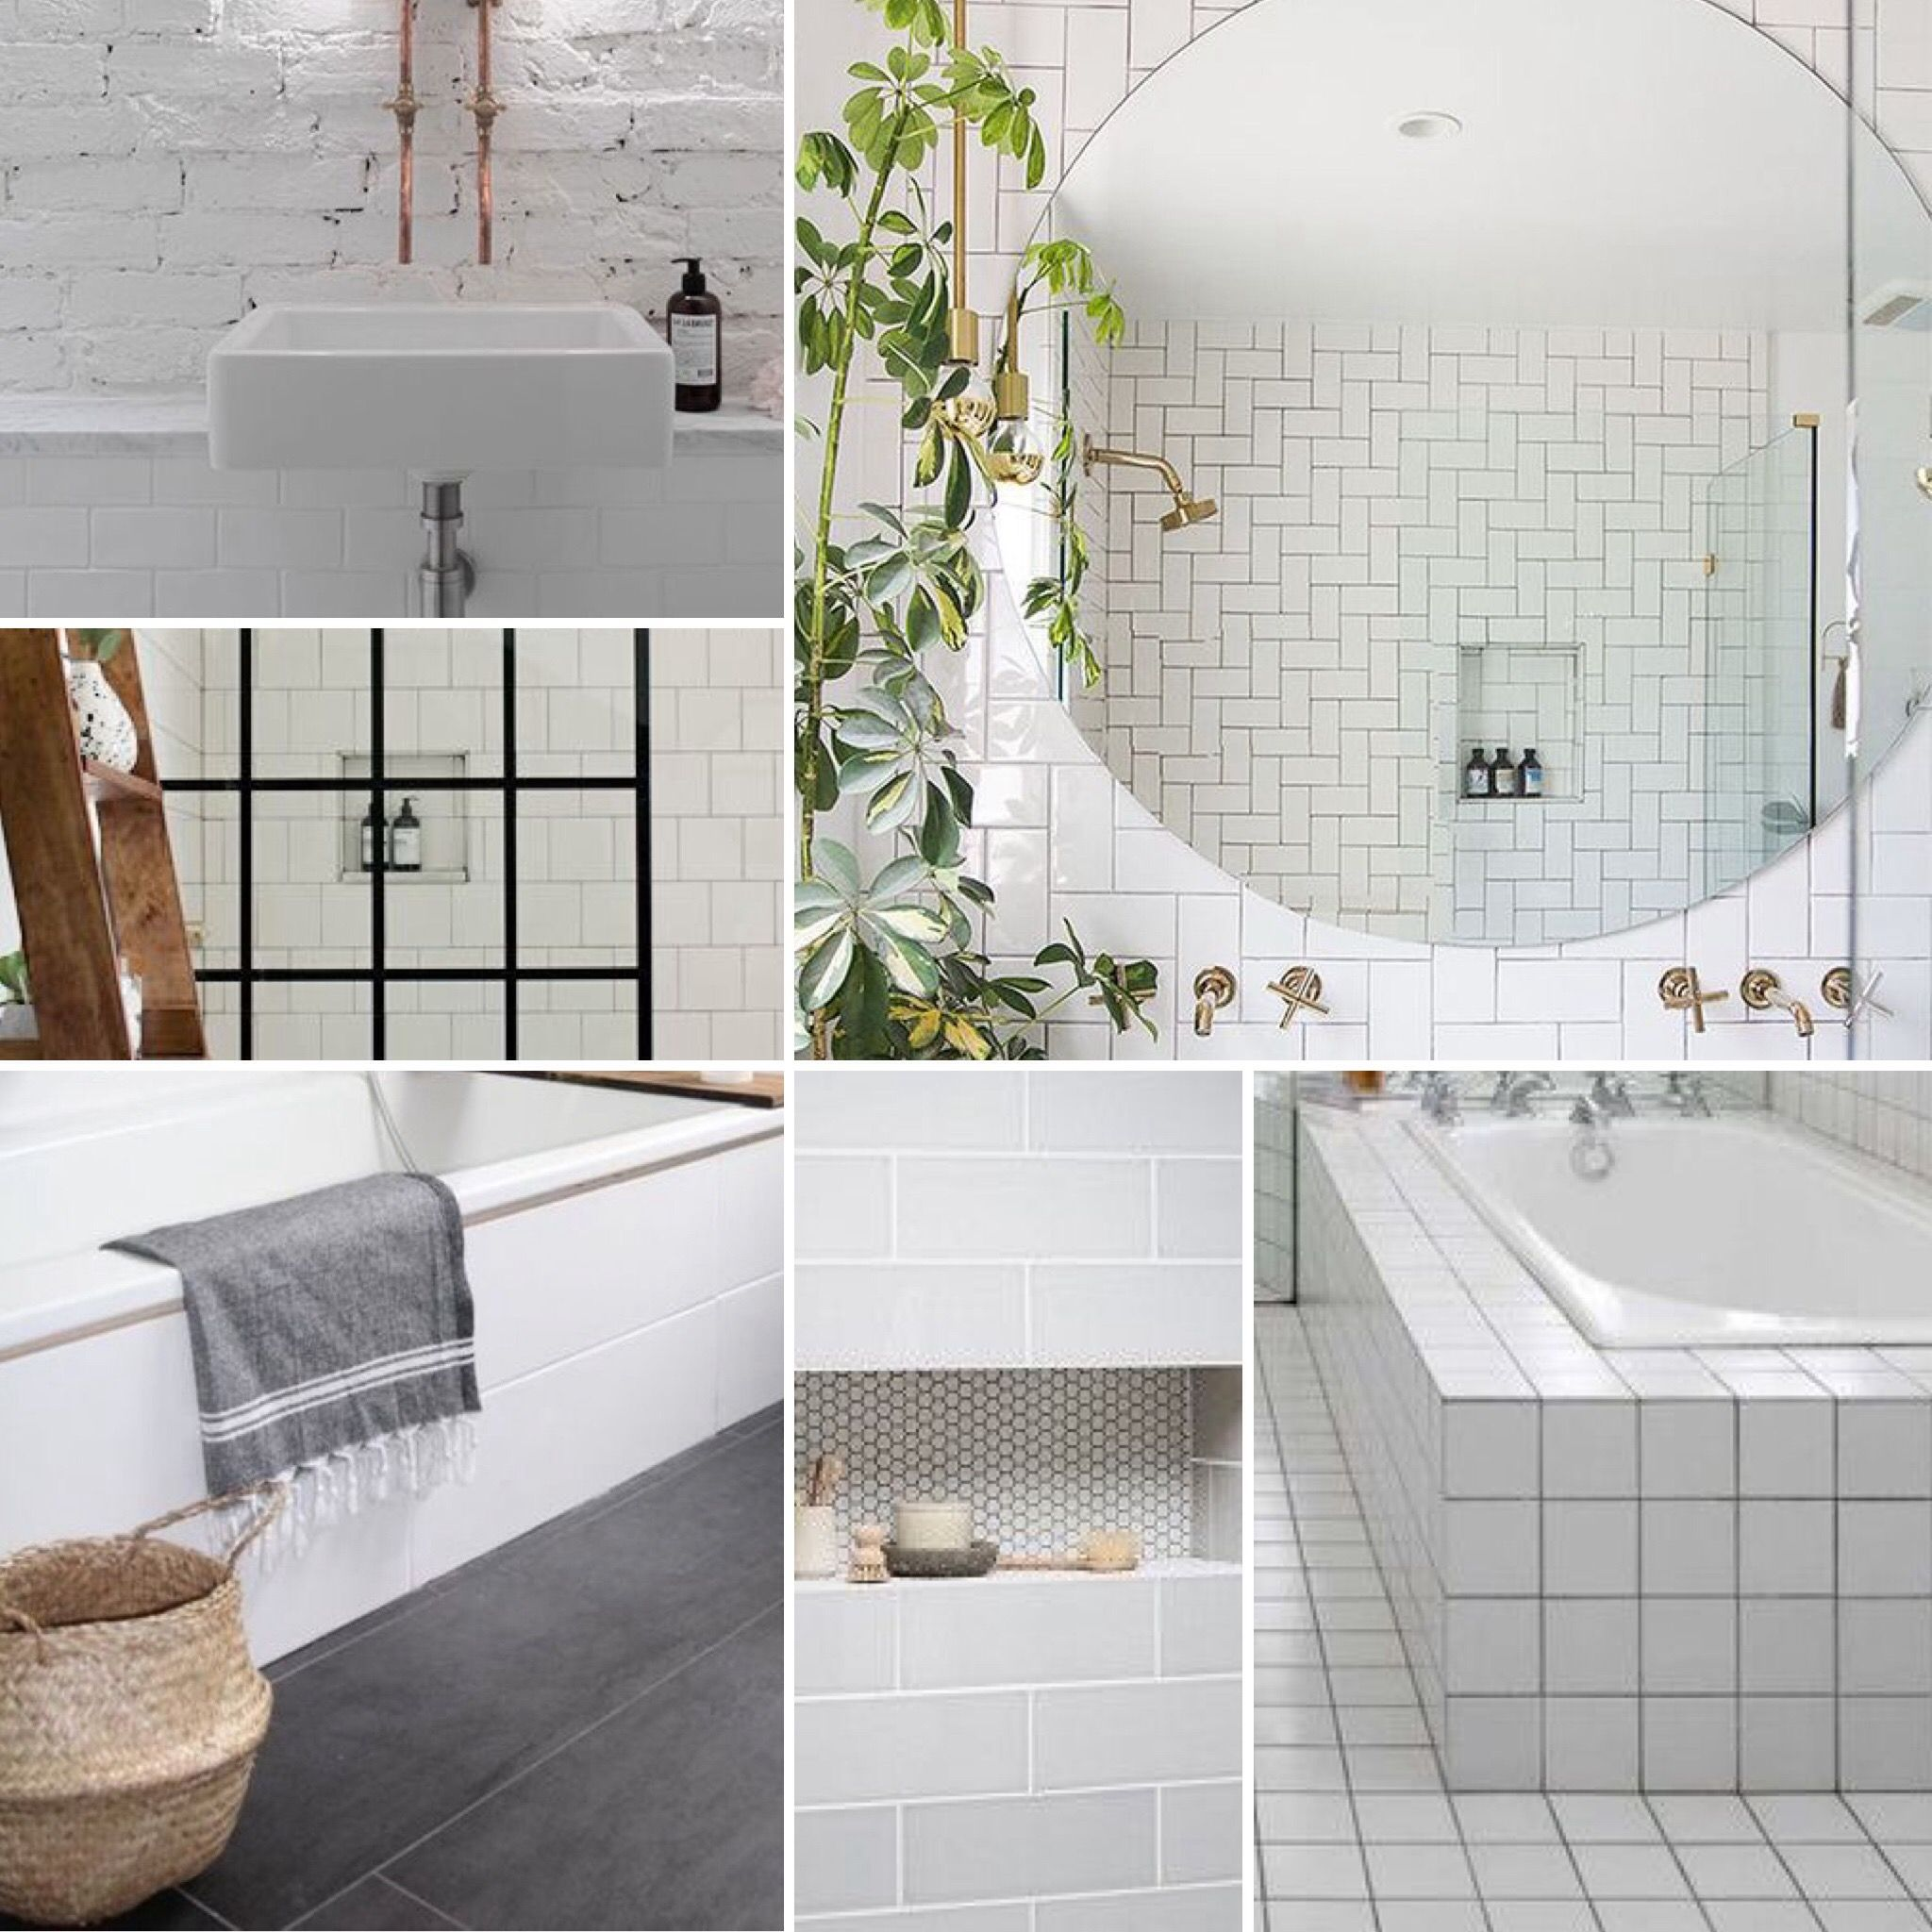 How I envisage our new family bathroom... Clean, monochrome space ...